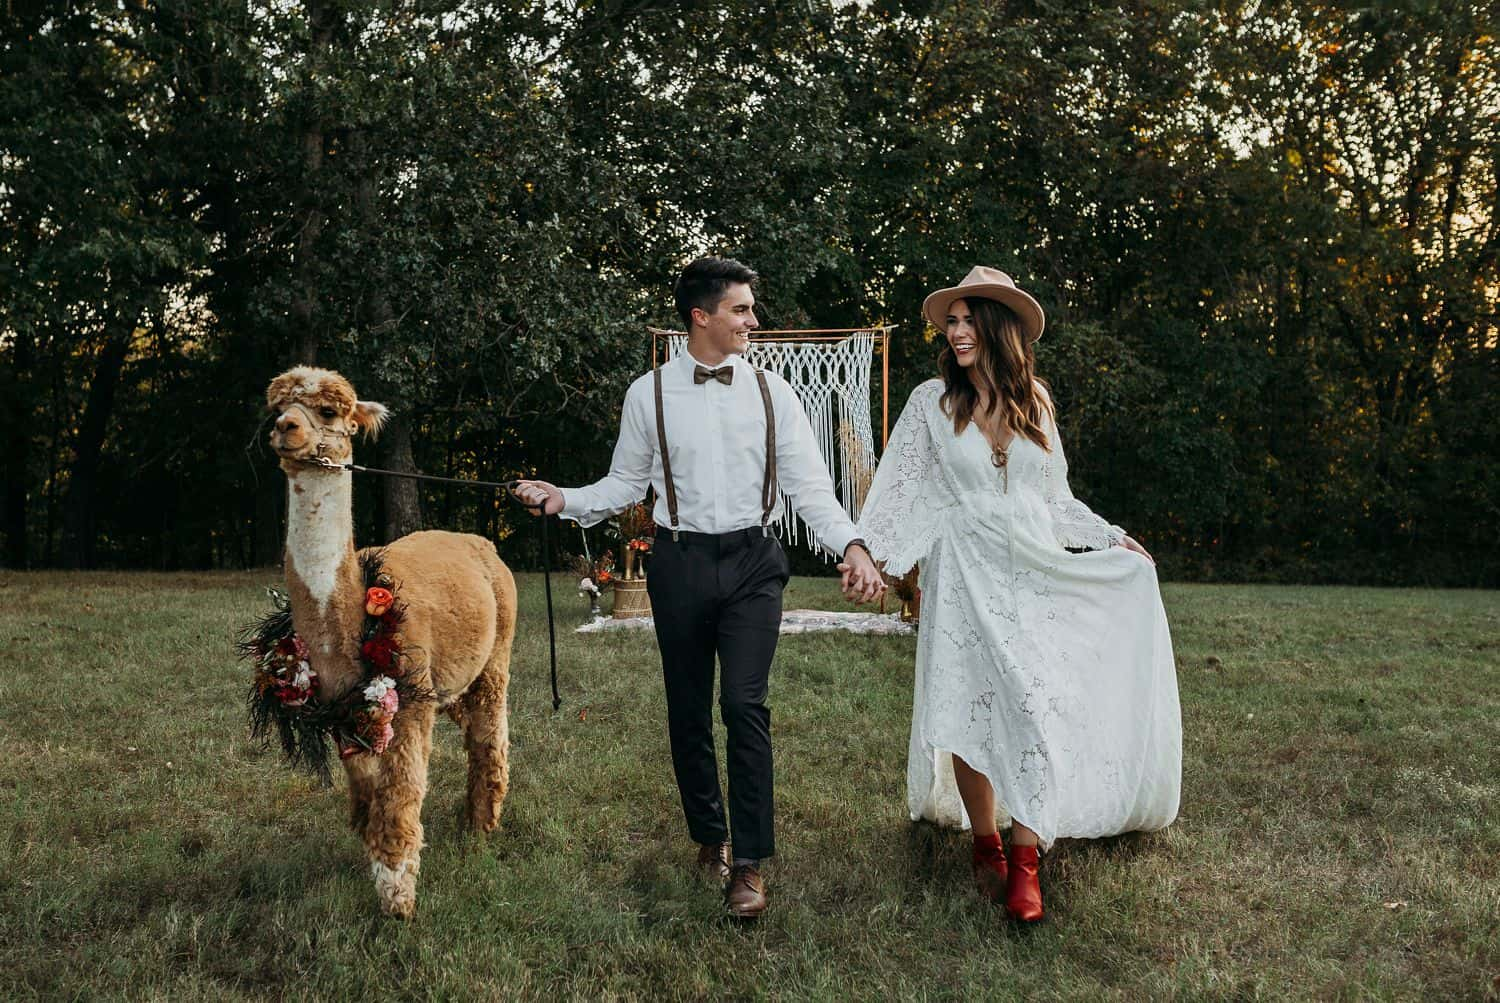 A boho wedding couple walk through a field with an alpaca wearing a floral wreath around his neck